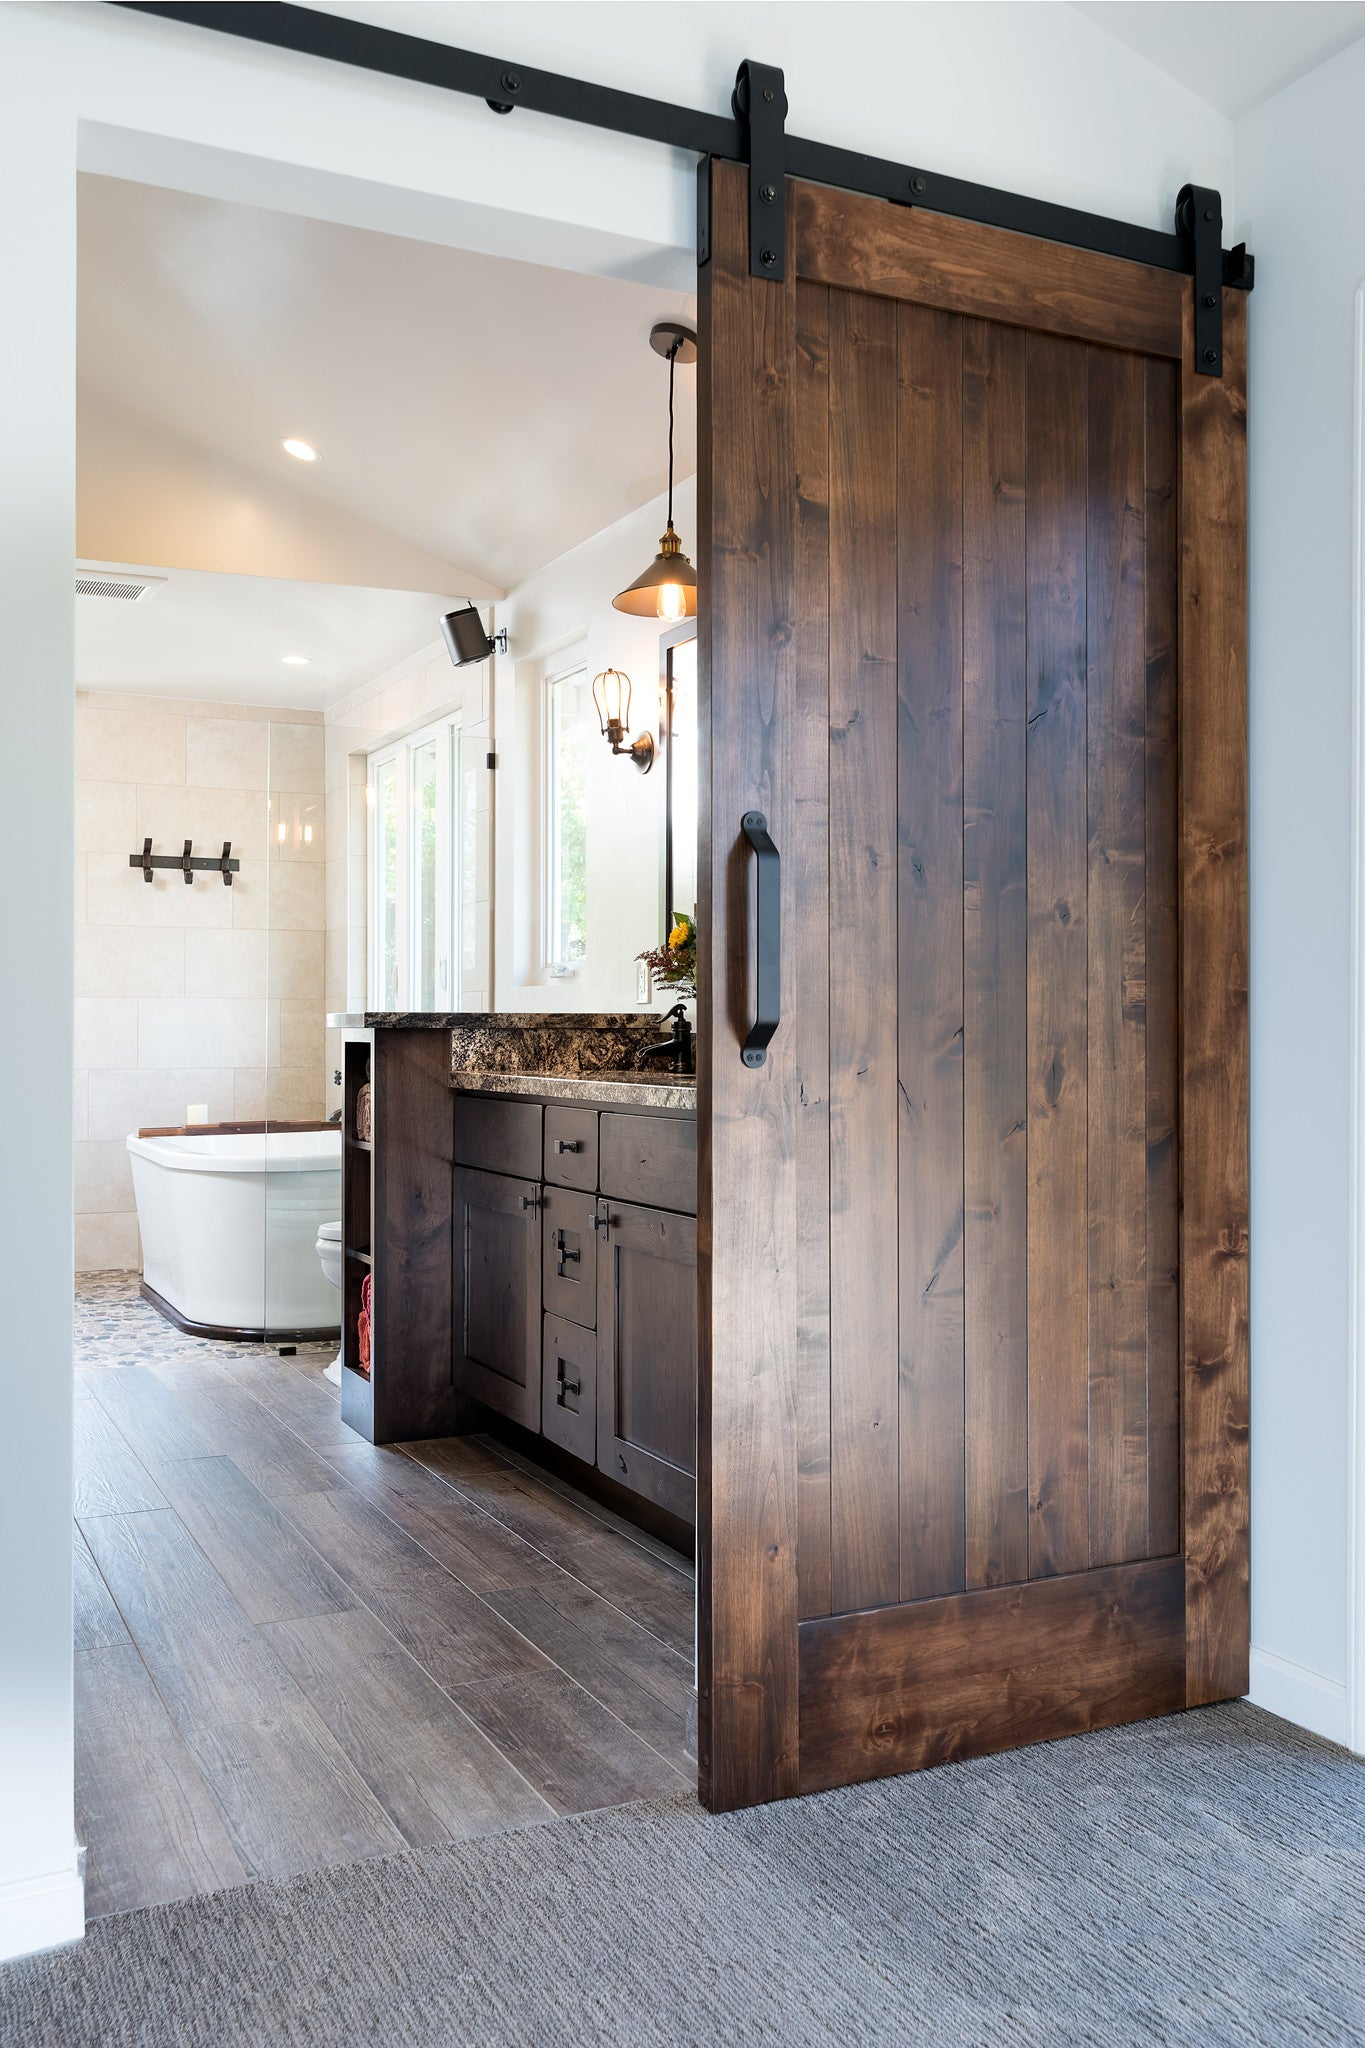 Modern Country Master Bathroom Remodel, Concord, California, featuring rustic barn door, by Jackie Lopey, Certified Interior Designer & Kitchen Designer